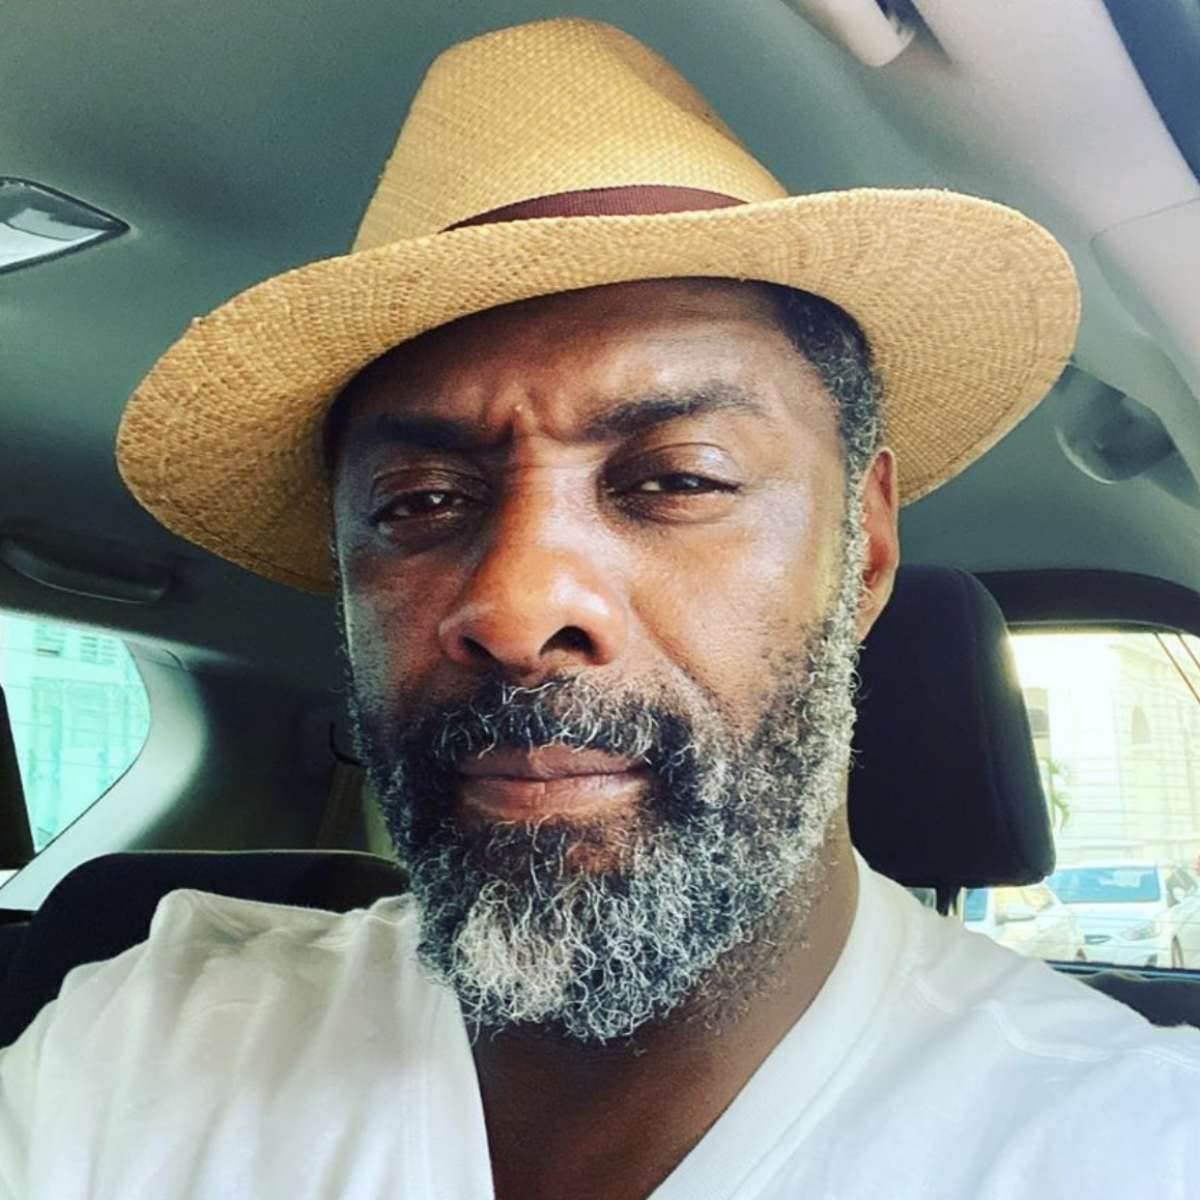 We See You Fellas! 12 Celebrity Men Who Went Salt & Pepper While Social Distancing